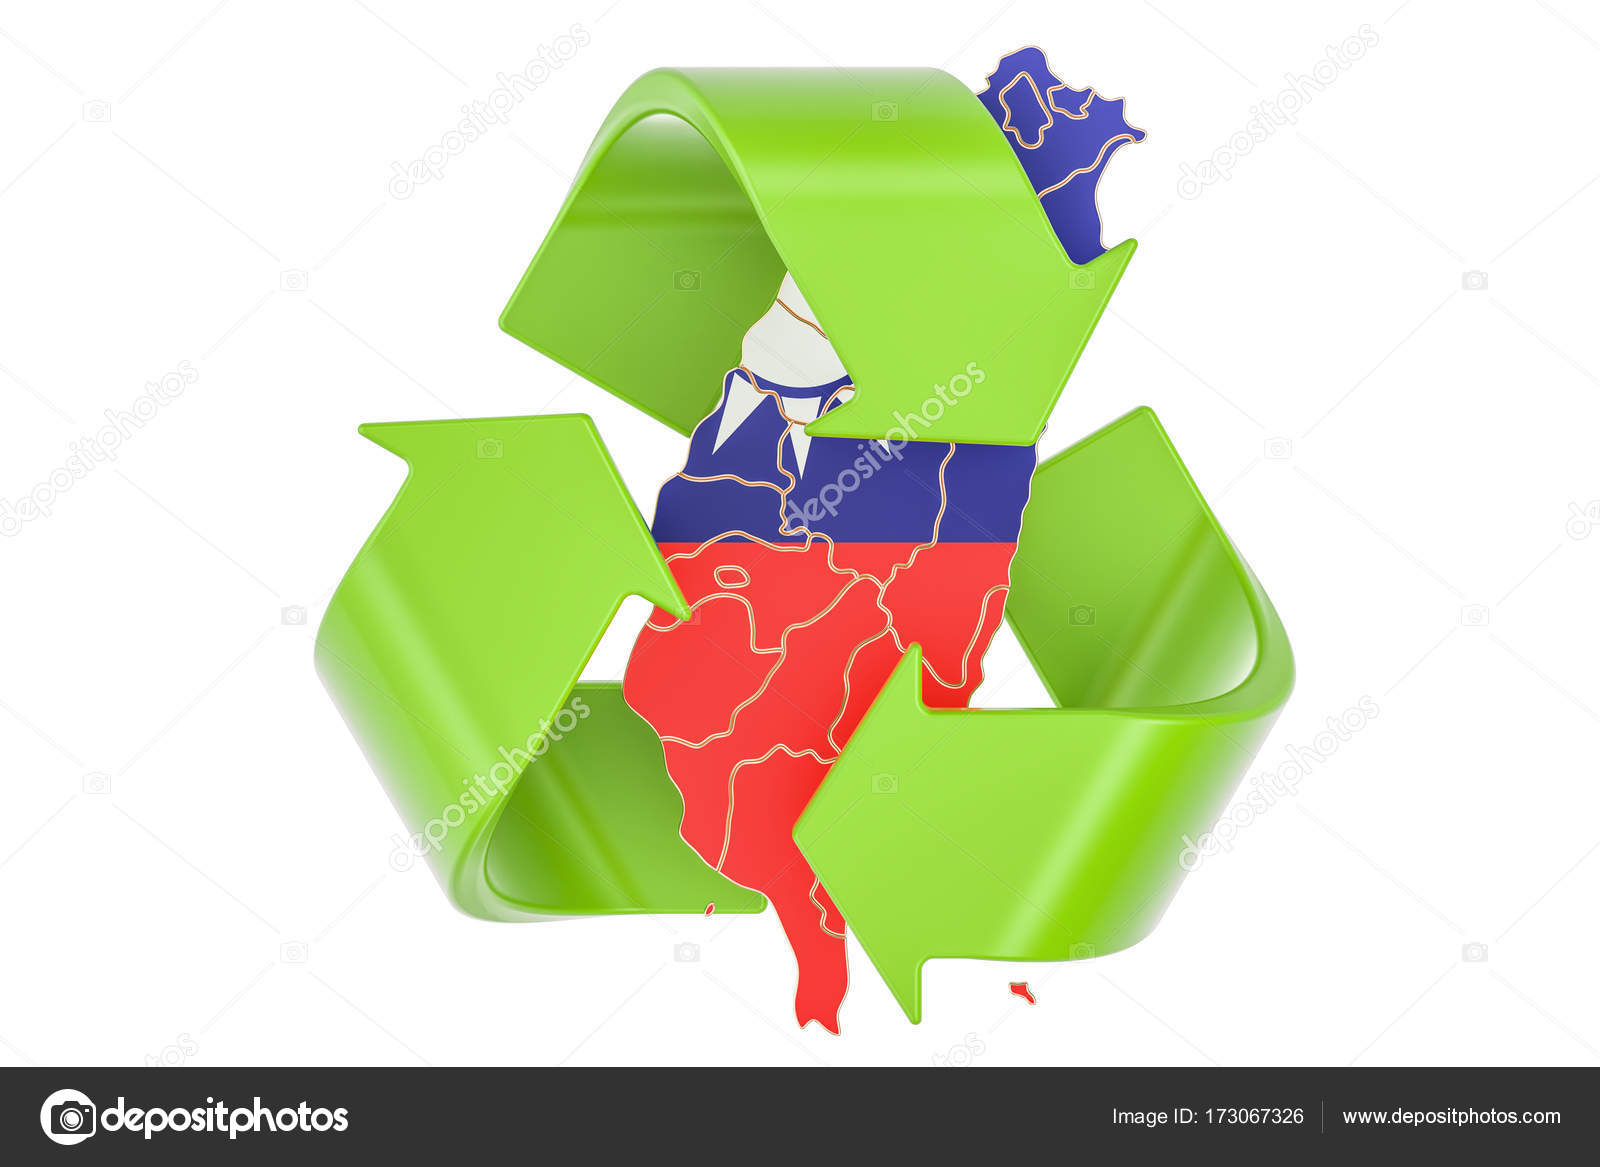 Recycling in taiwan concept 3d rendering stock photo alexlmx recycling in taiwan concept 3d rendering stock photo buycottarizona Choice Image